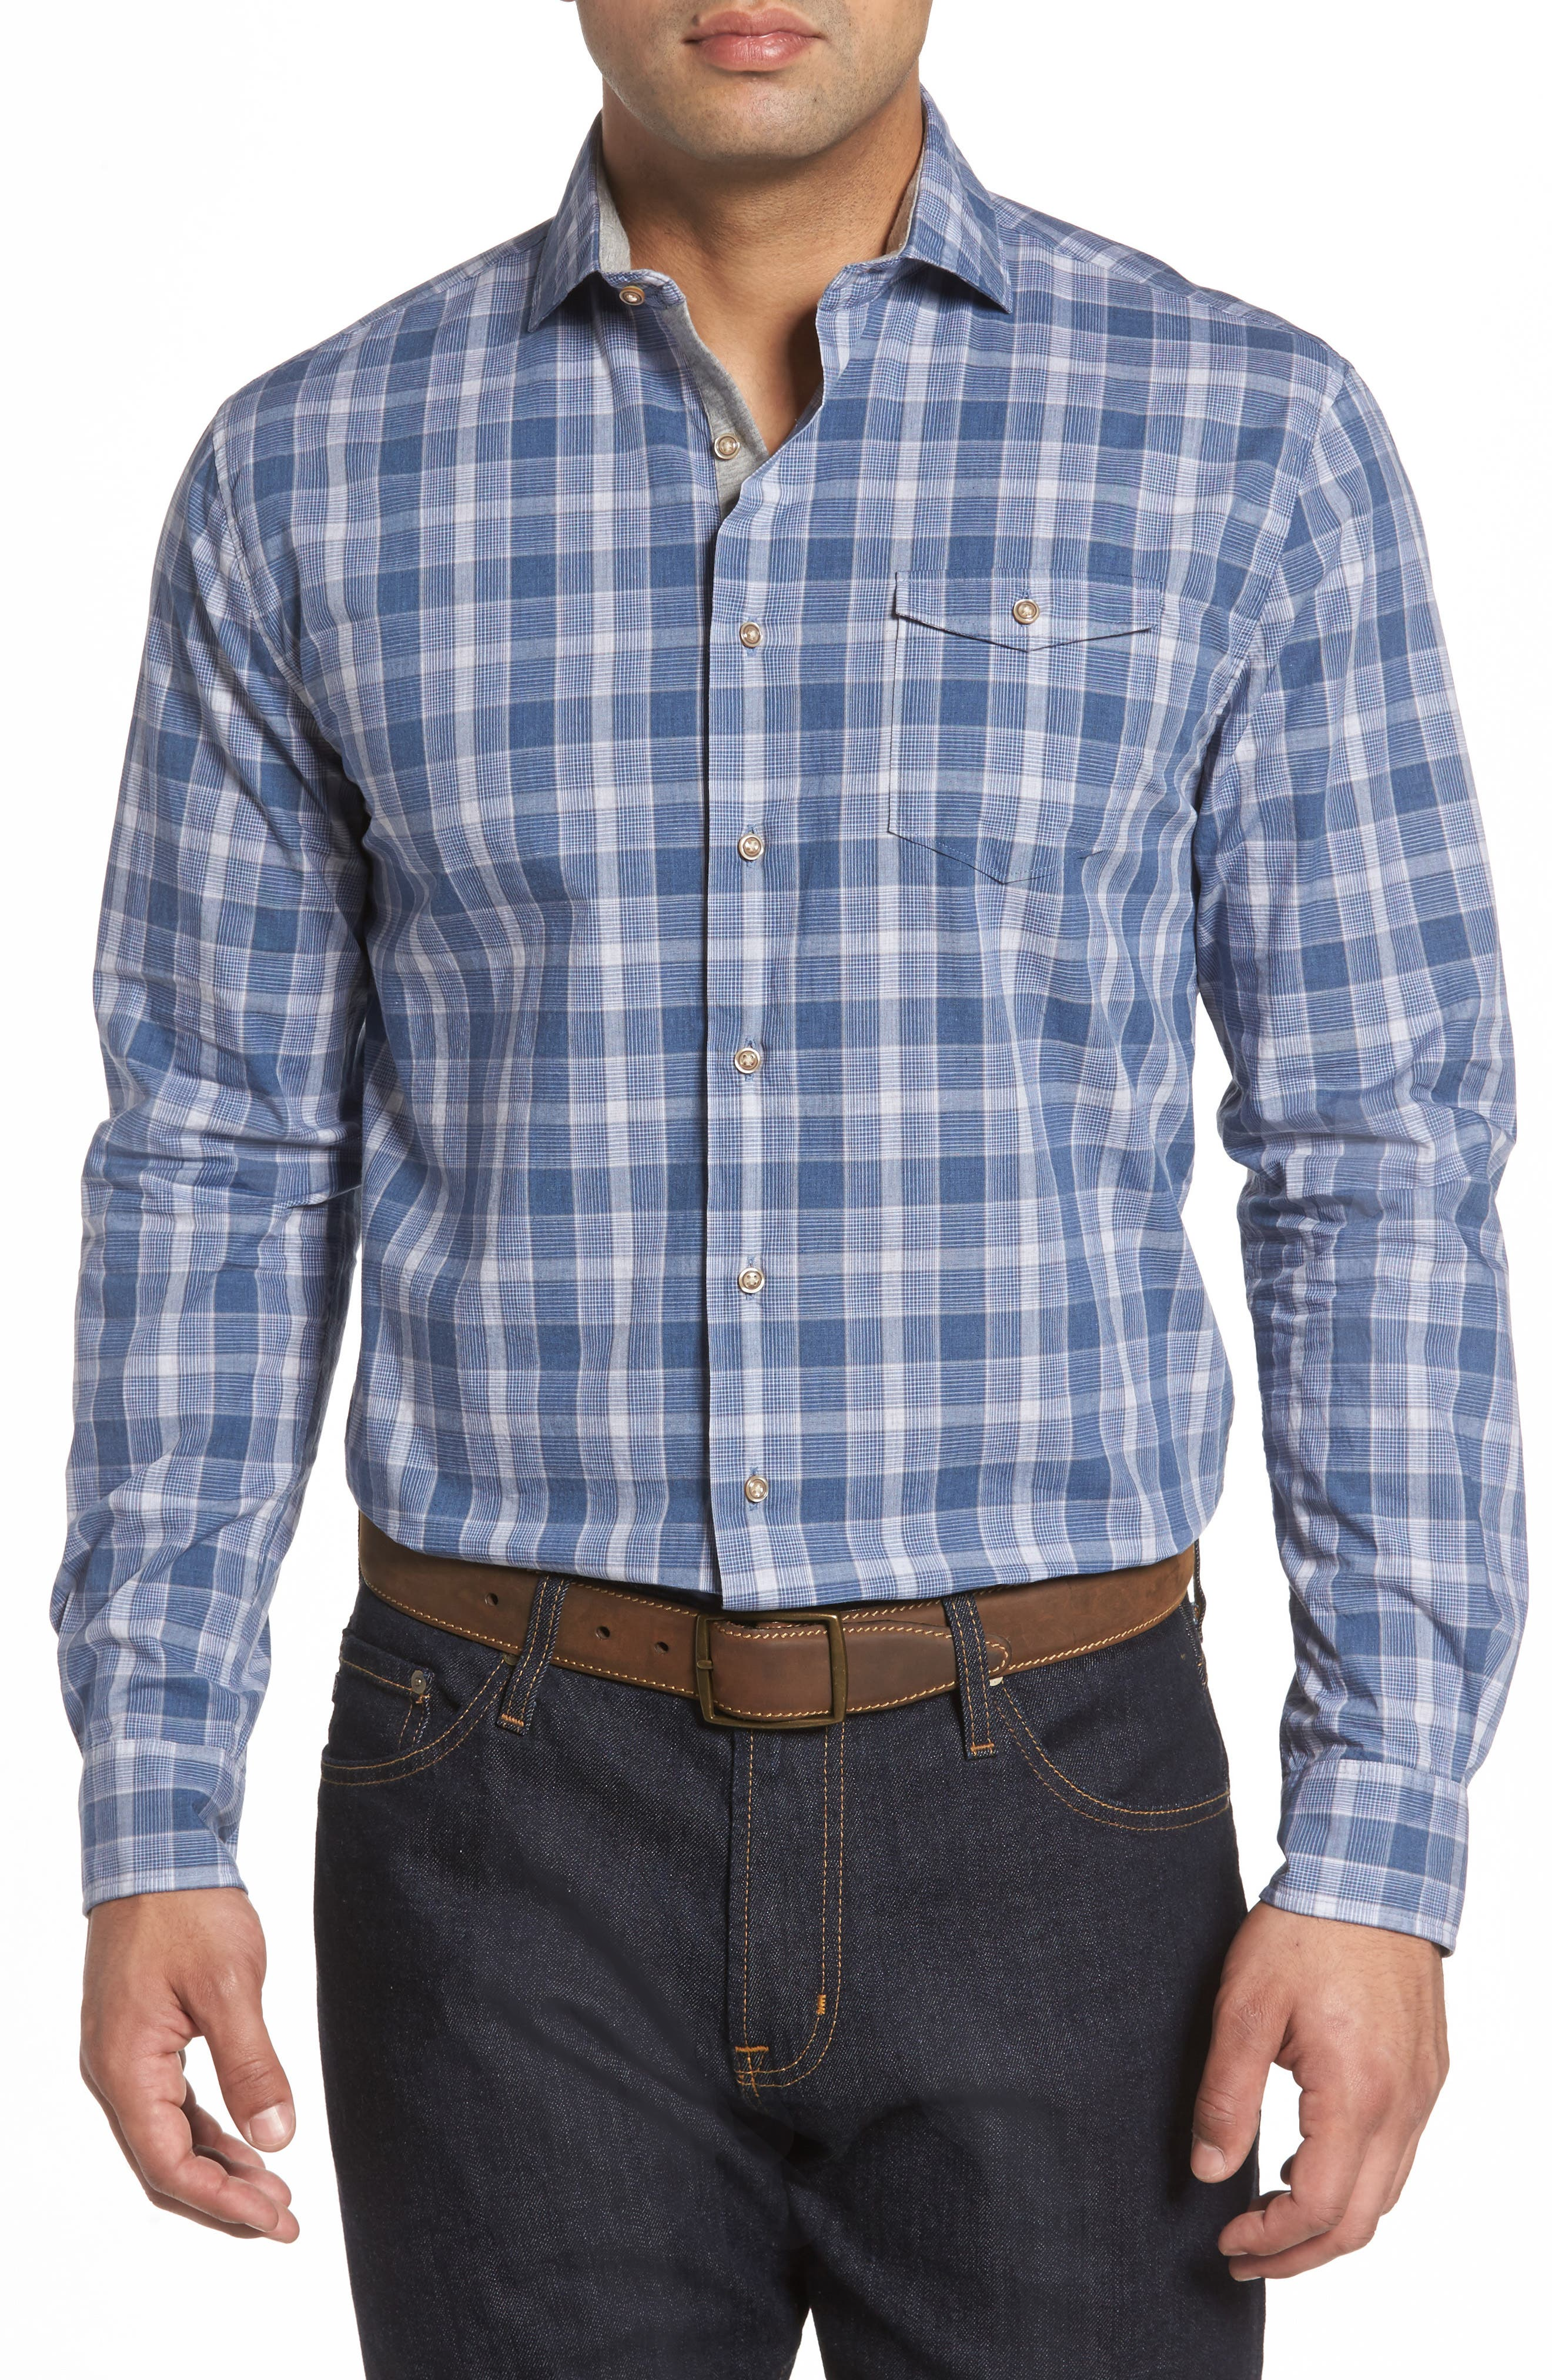 Highlands Classic Fit Plaid Sport Shirt,                         Main,                         color, 464